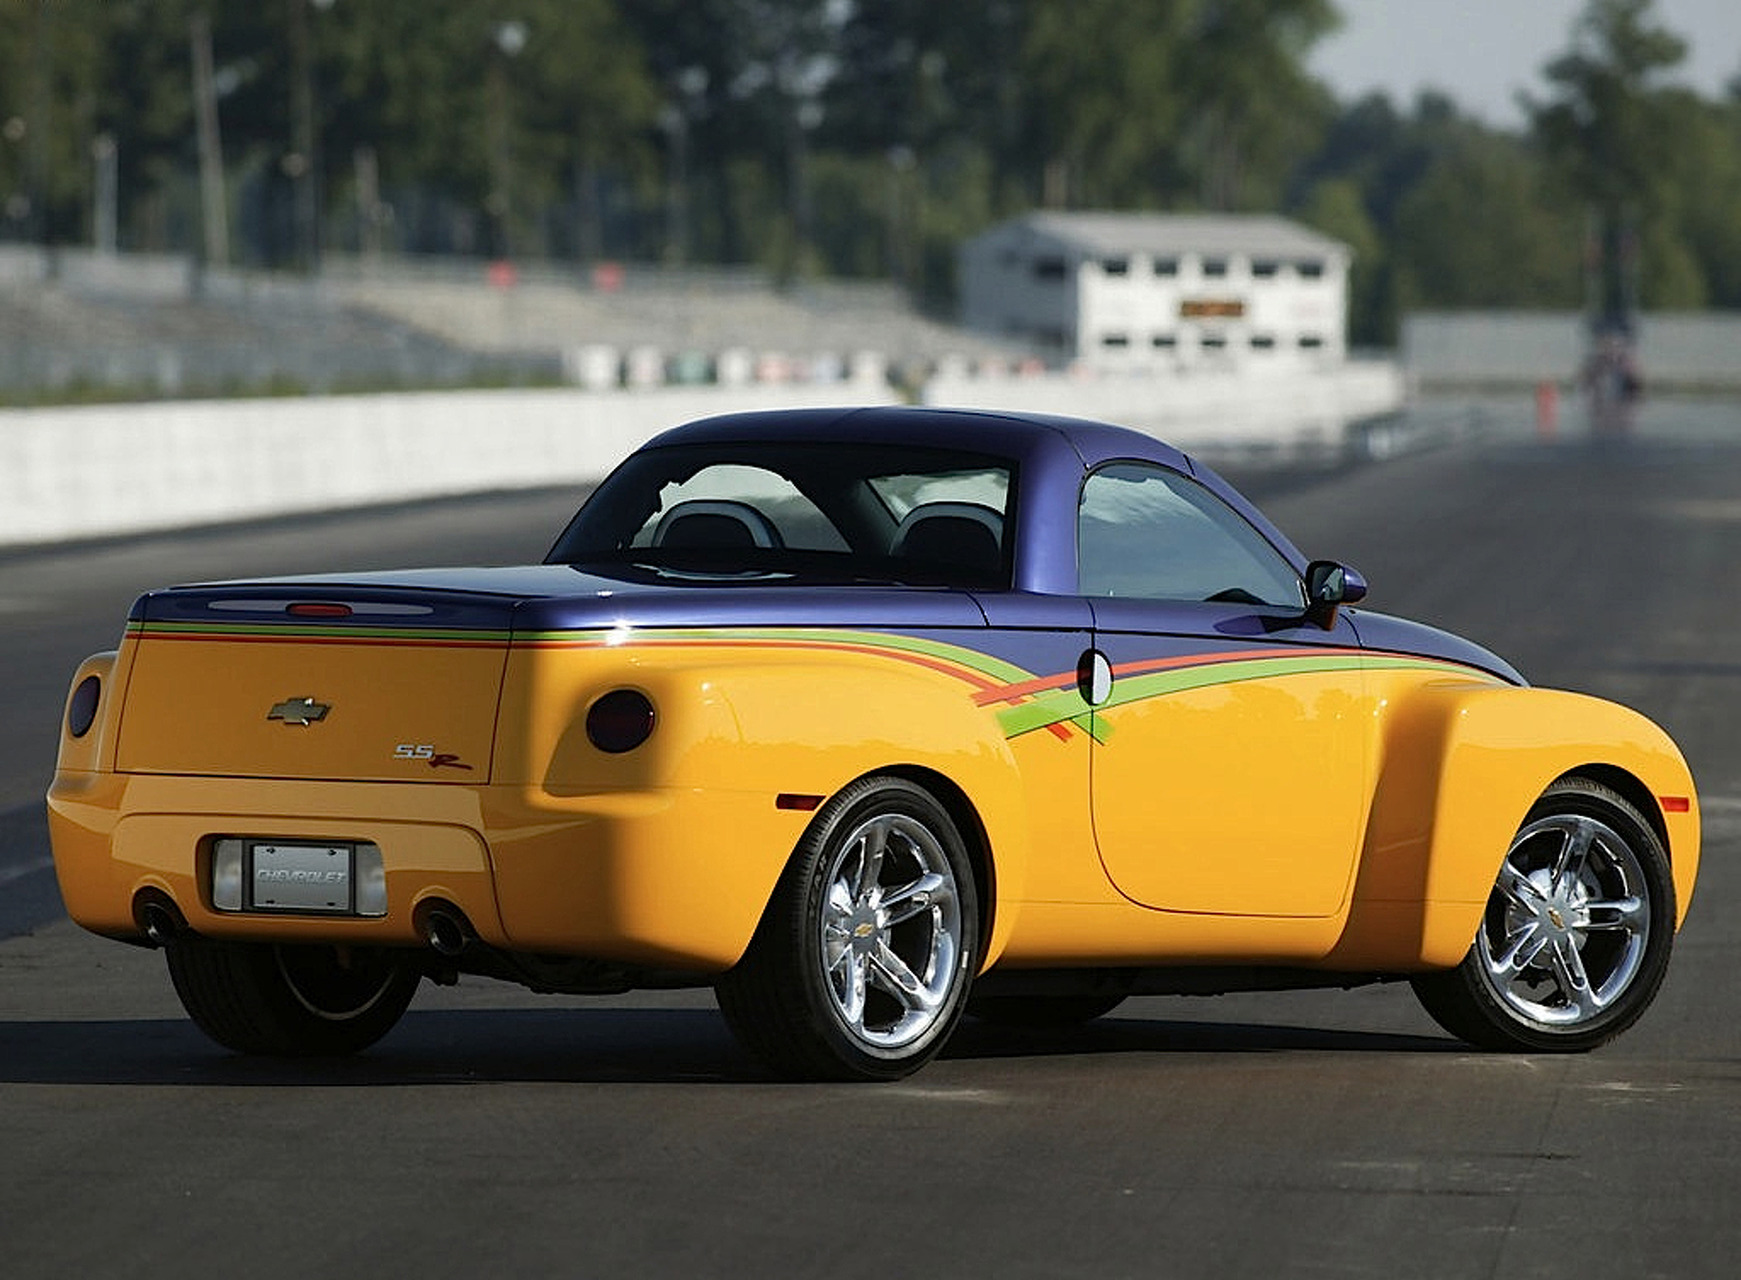 Chevrolet SSR Hot Rod Power Tour Concept